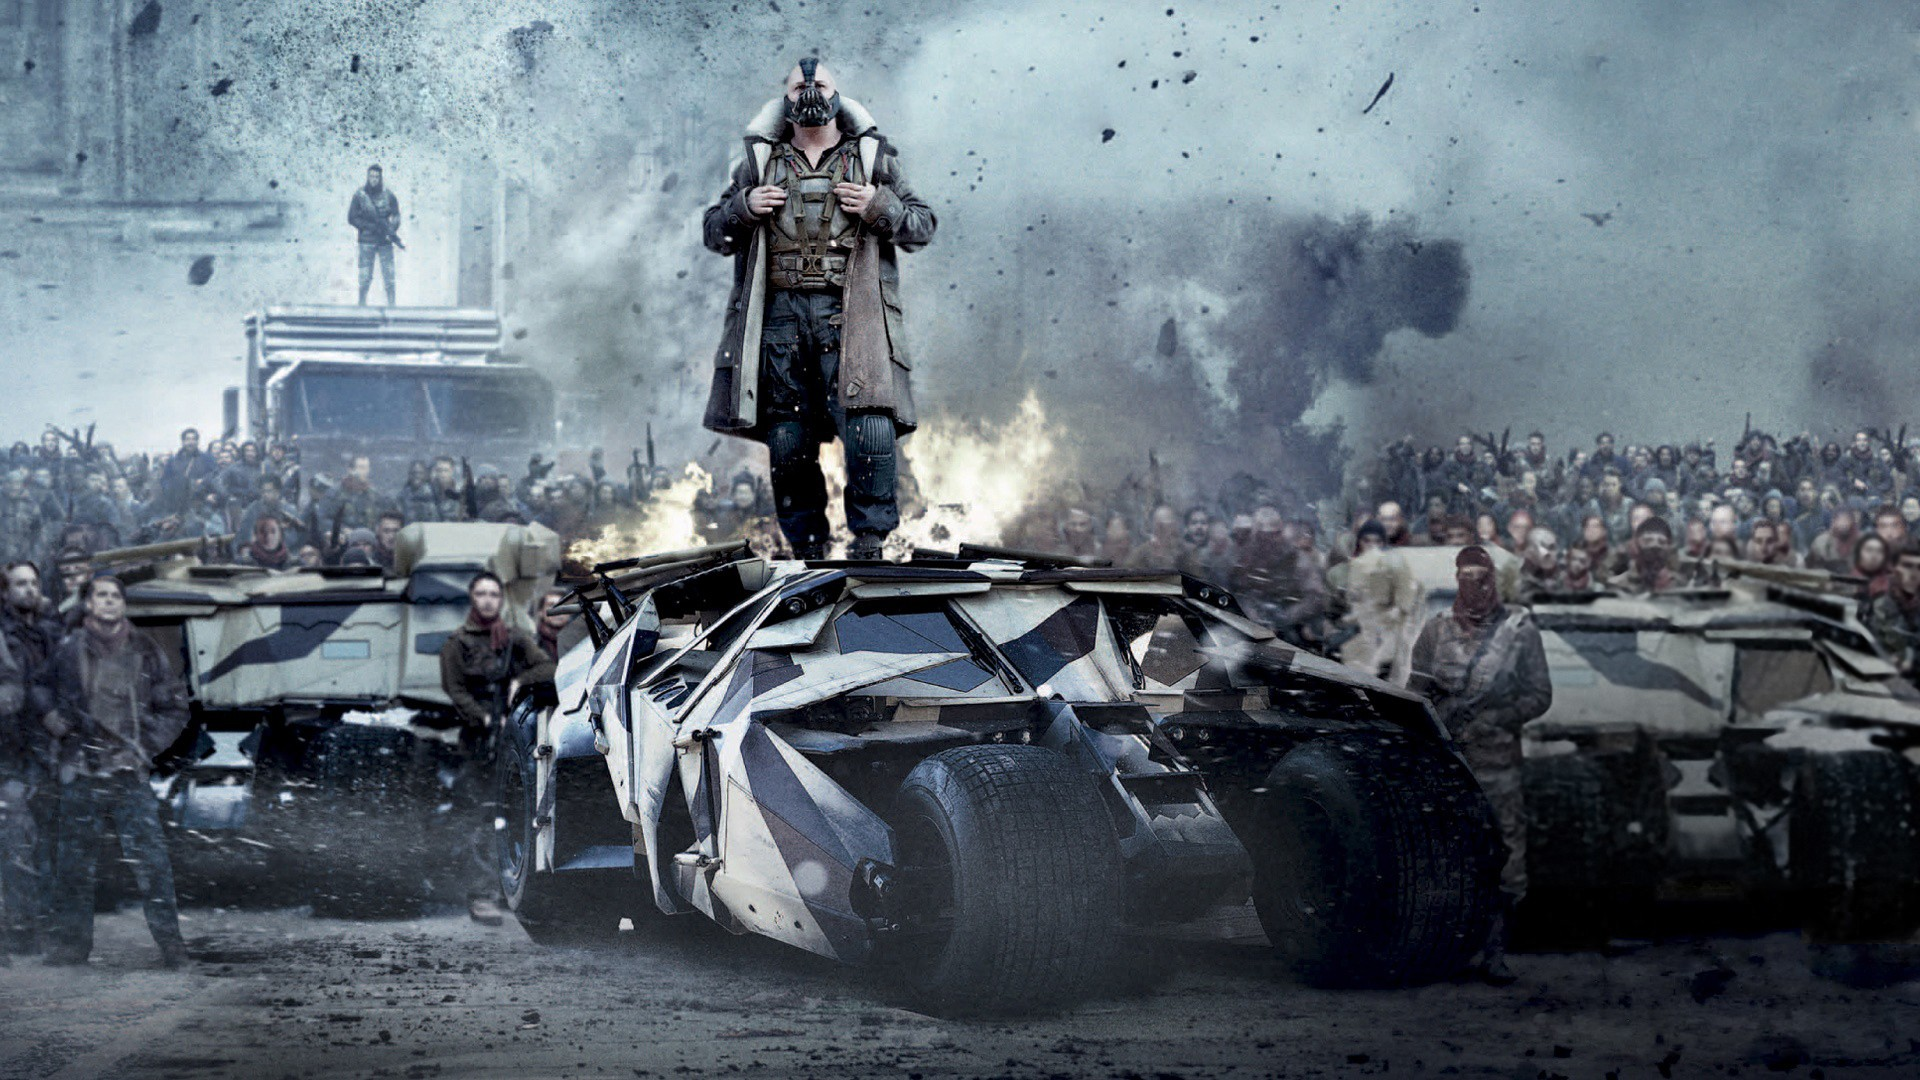 15 Batman The Dark Knight Rises Wallpapers   DezineGuide 1920x1080